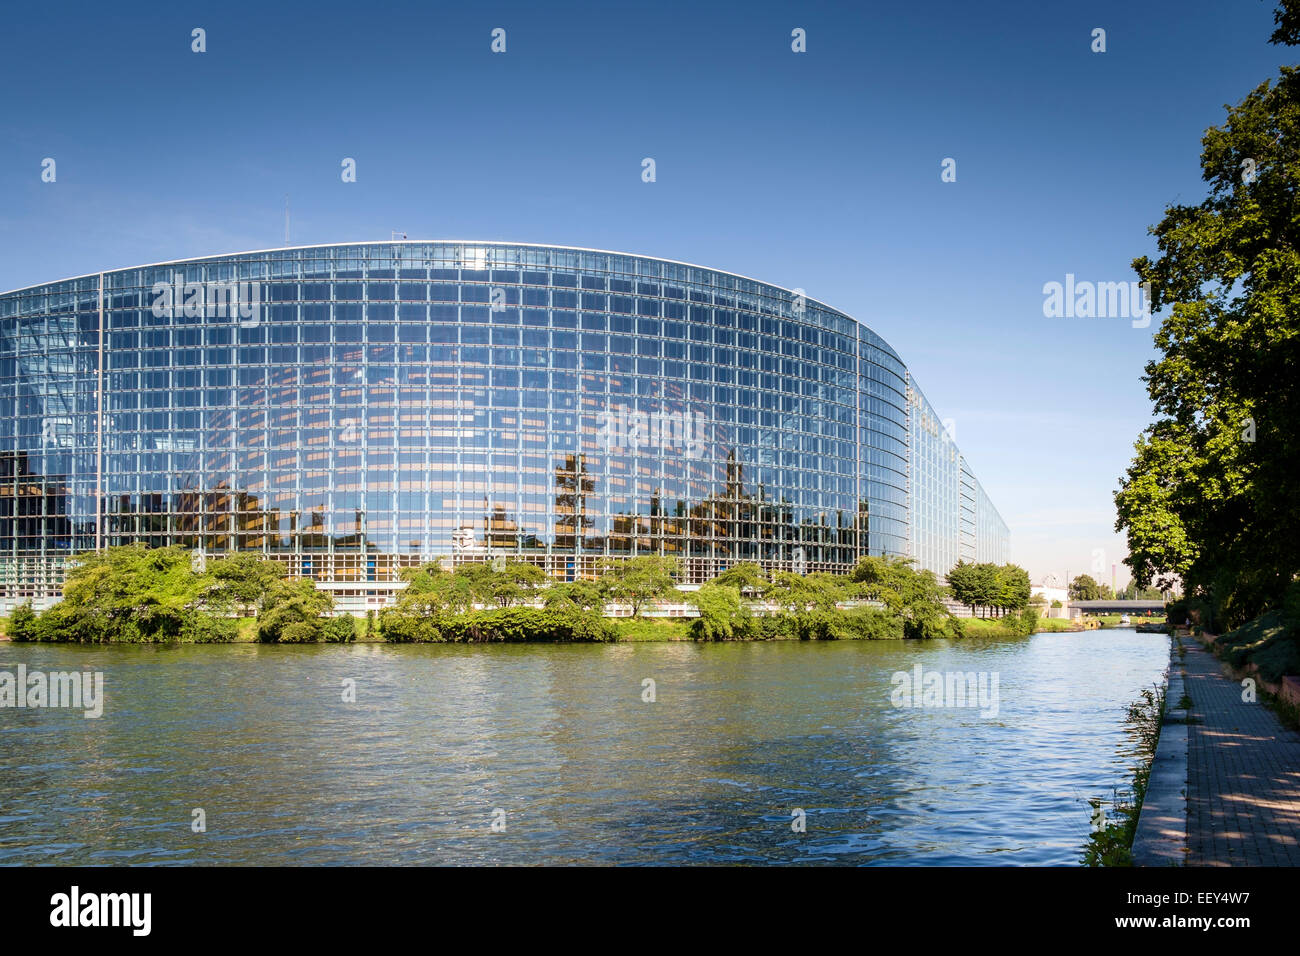 L'architecture moderne, France - Bâtiment du Parlement européen, Strasbourg, France, Europe Photo Stock